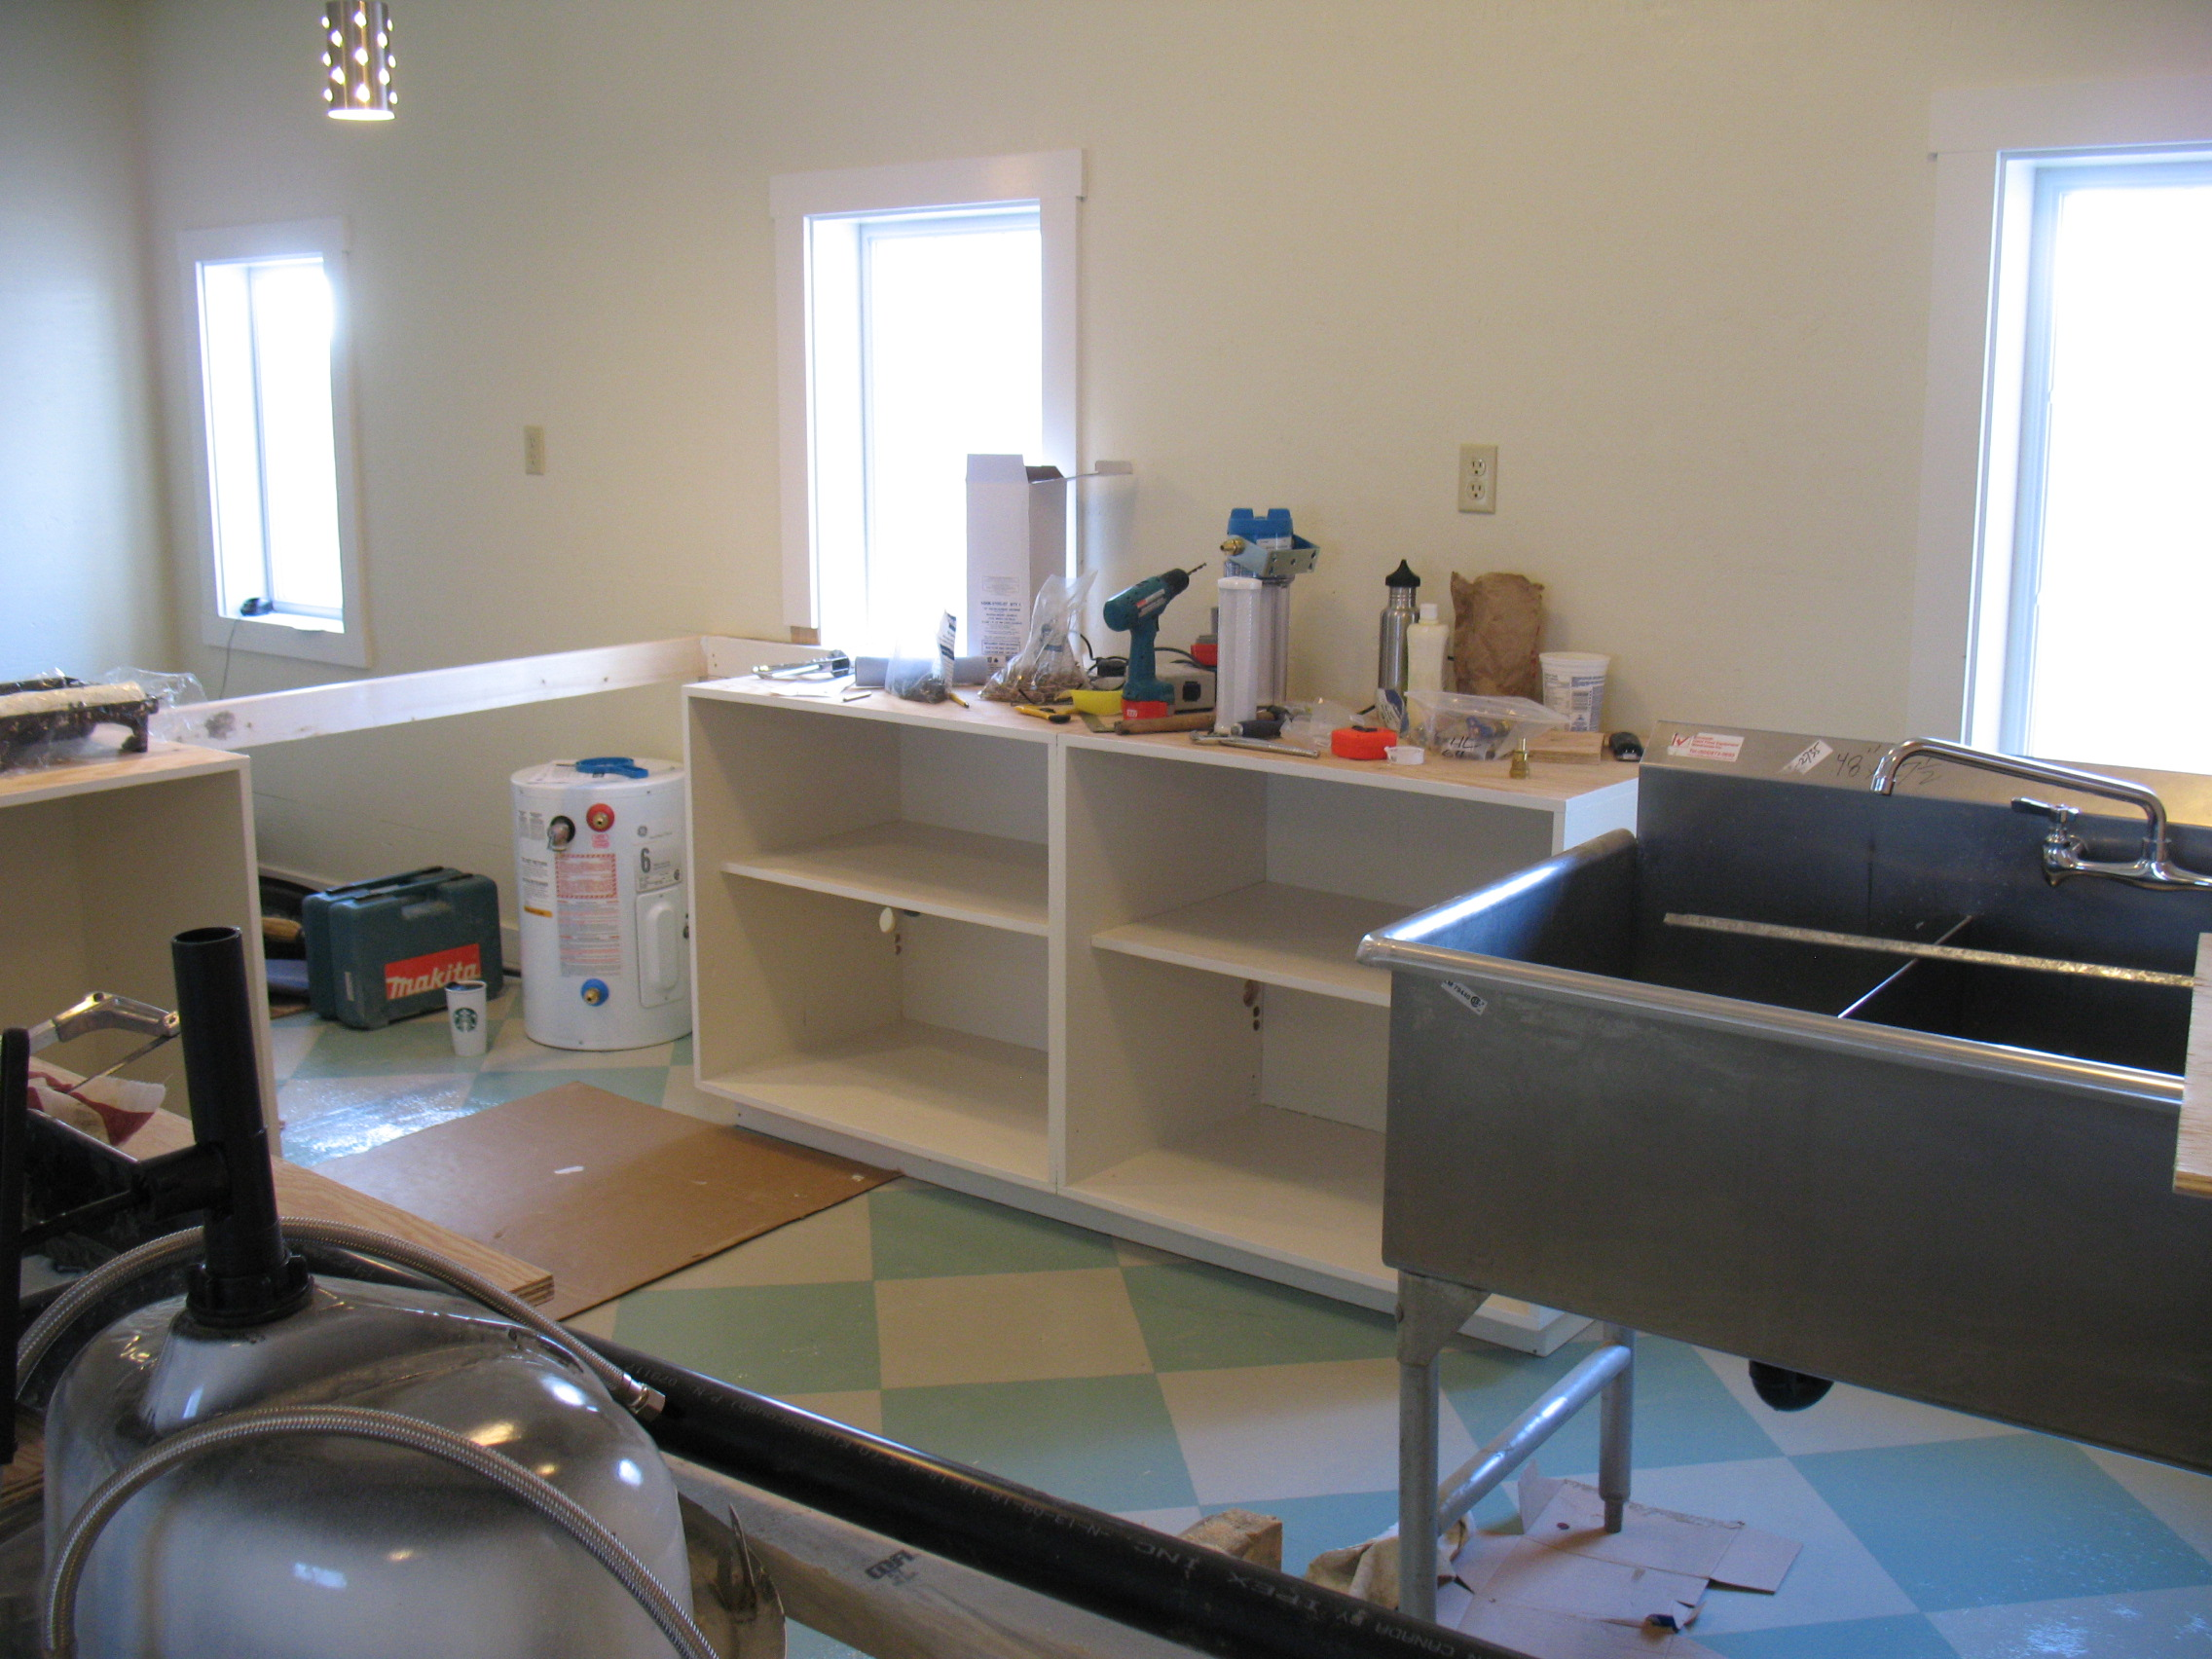 Counters, sinks, plumbing - it's all happening here!